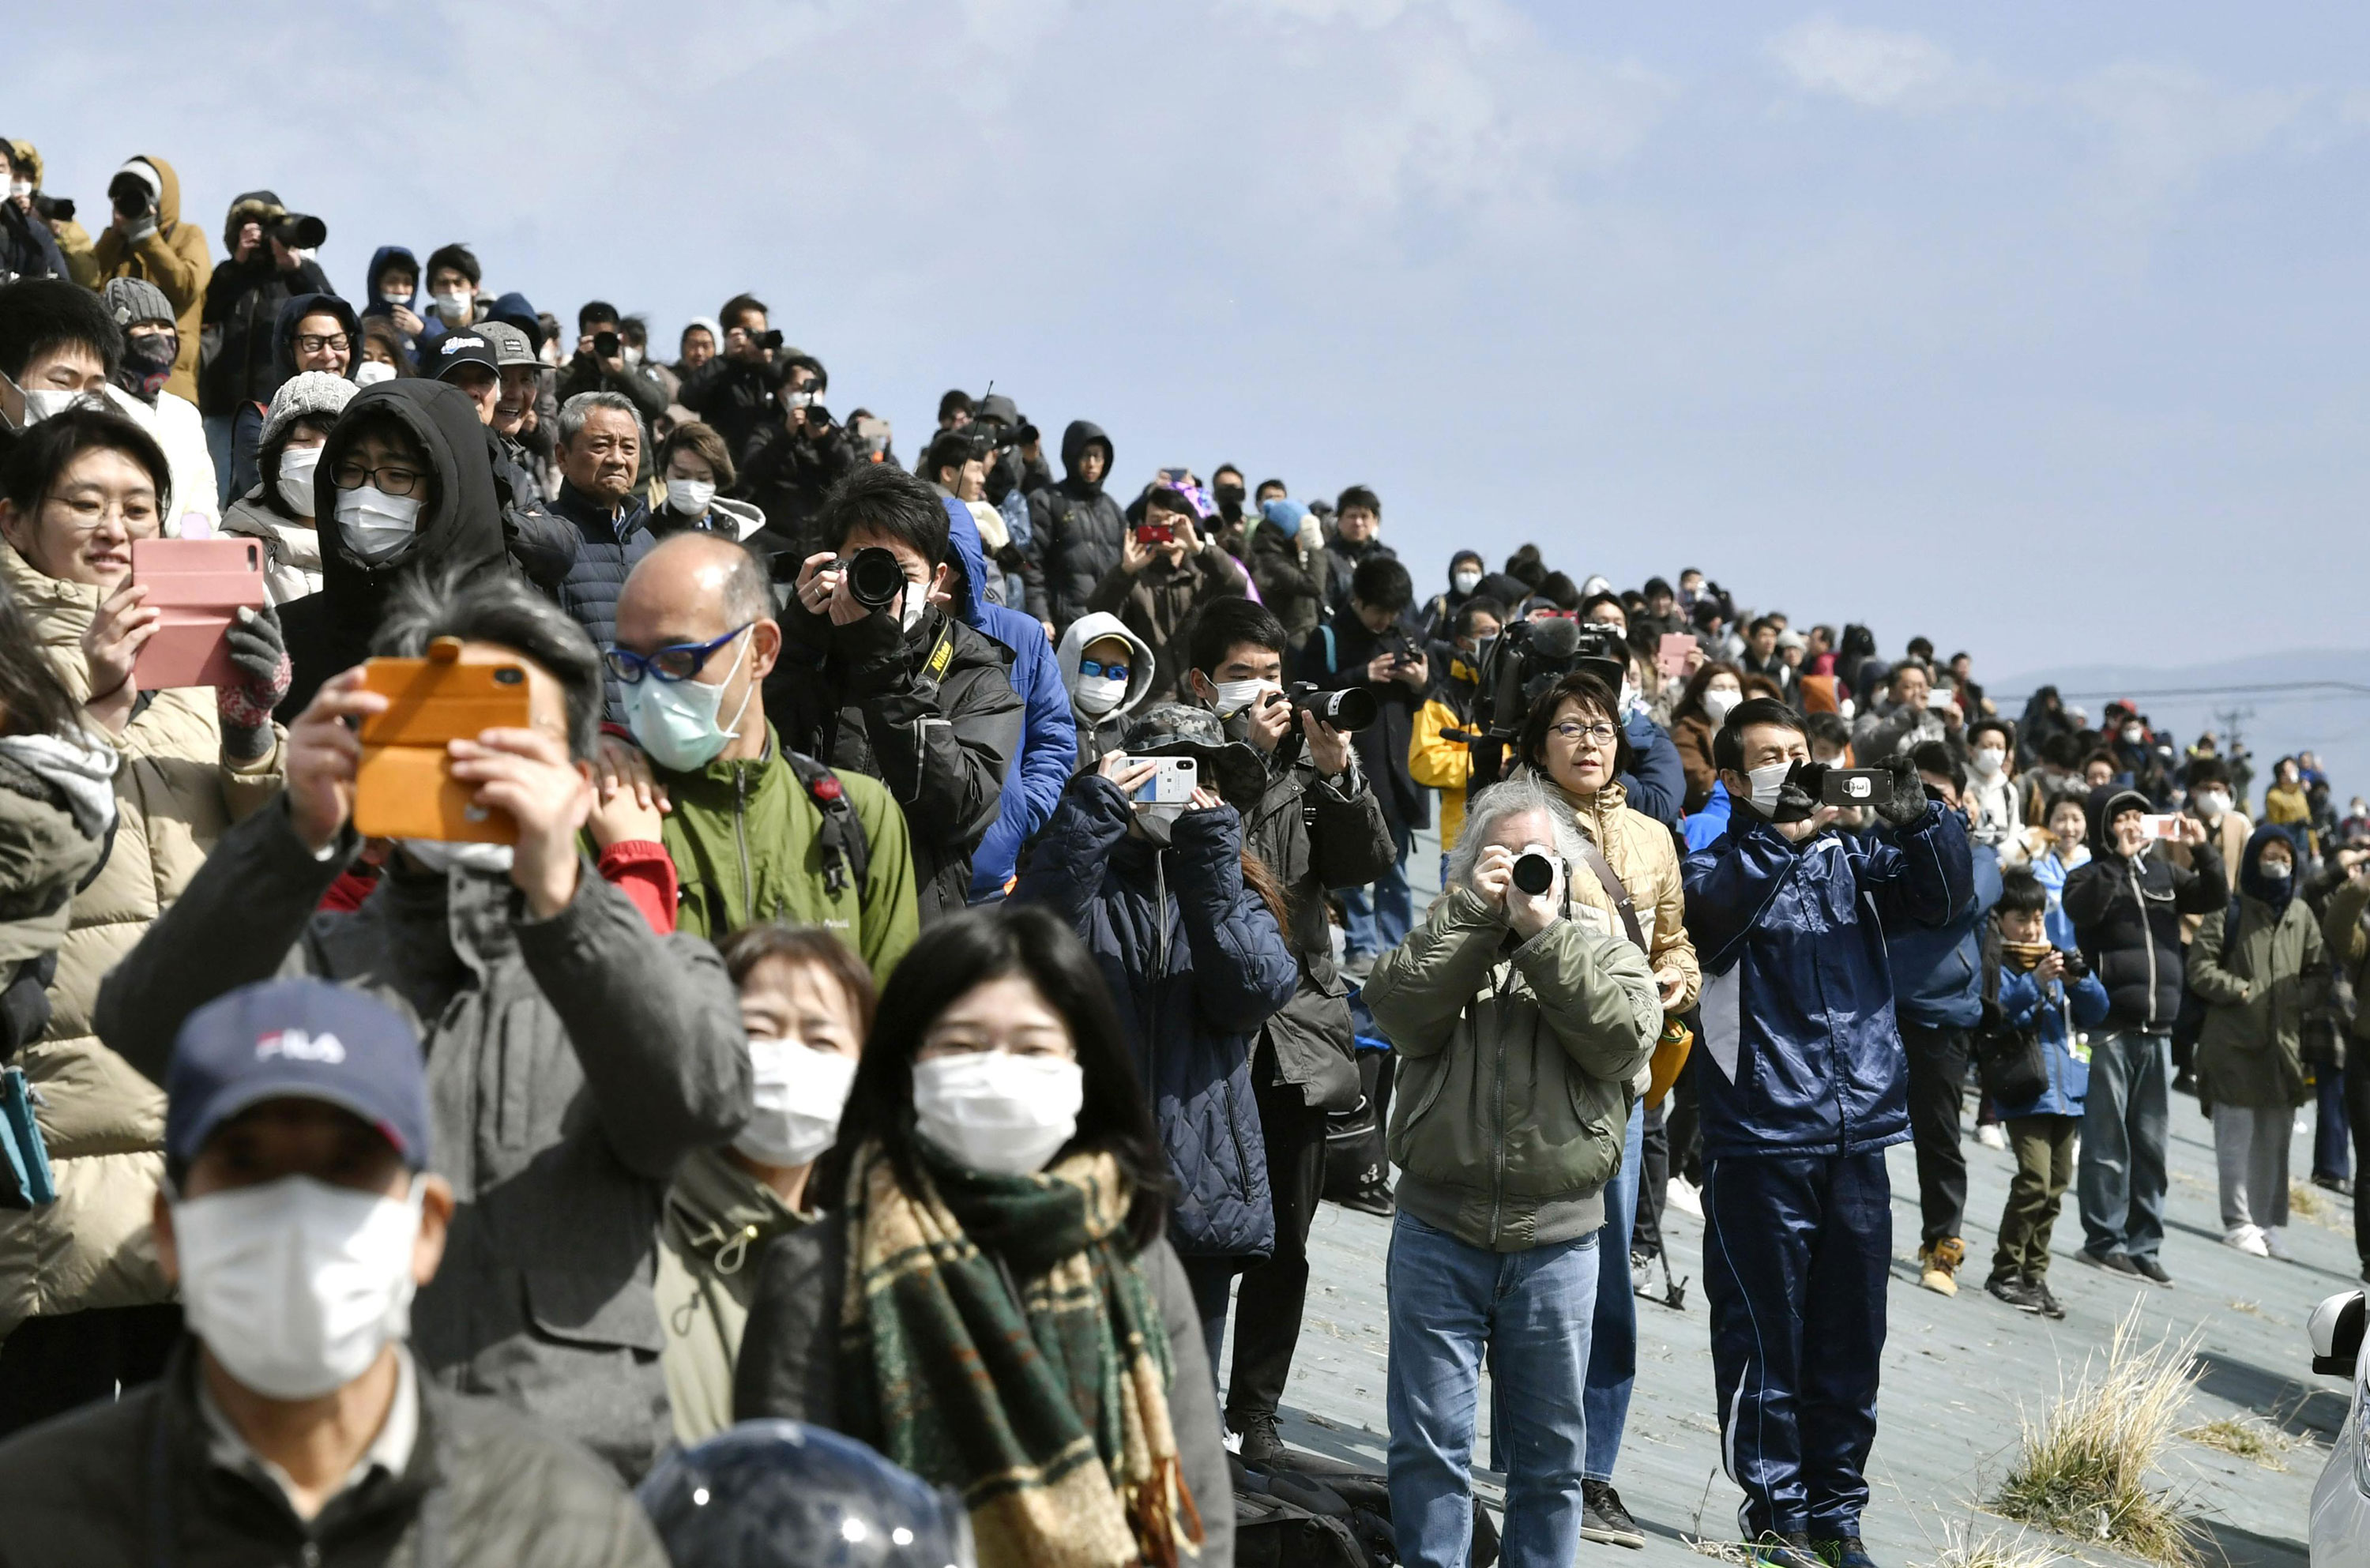 People watch the Japanese Air Self-Defense Force's Blue Impulse aerobatics team in Higashimatsushima, Miyagi, on March 20, where the Olympic flame arrived from Greece.